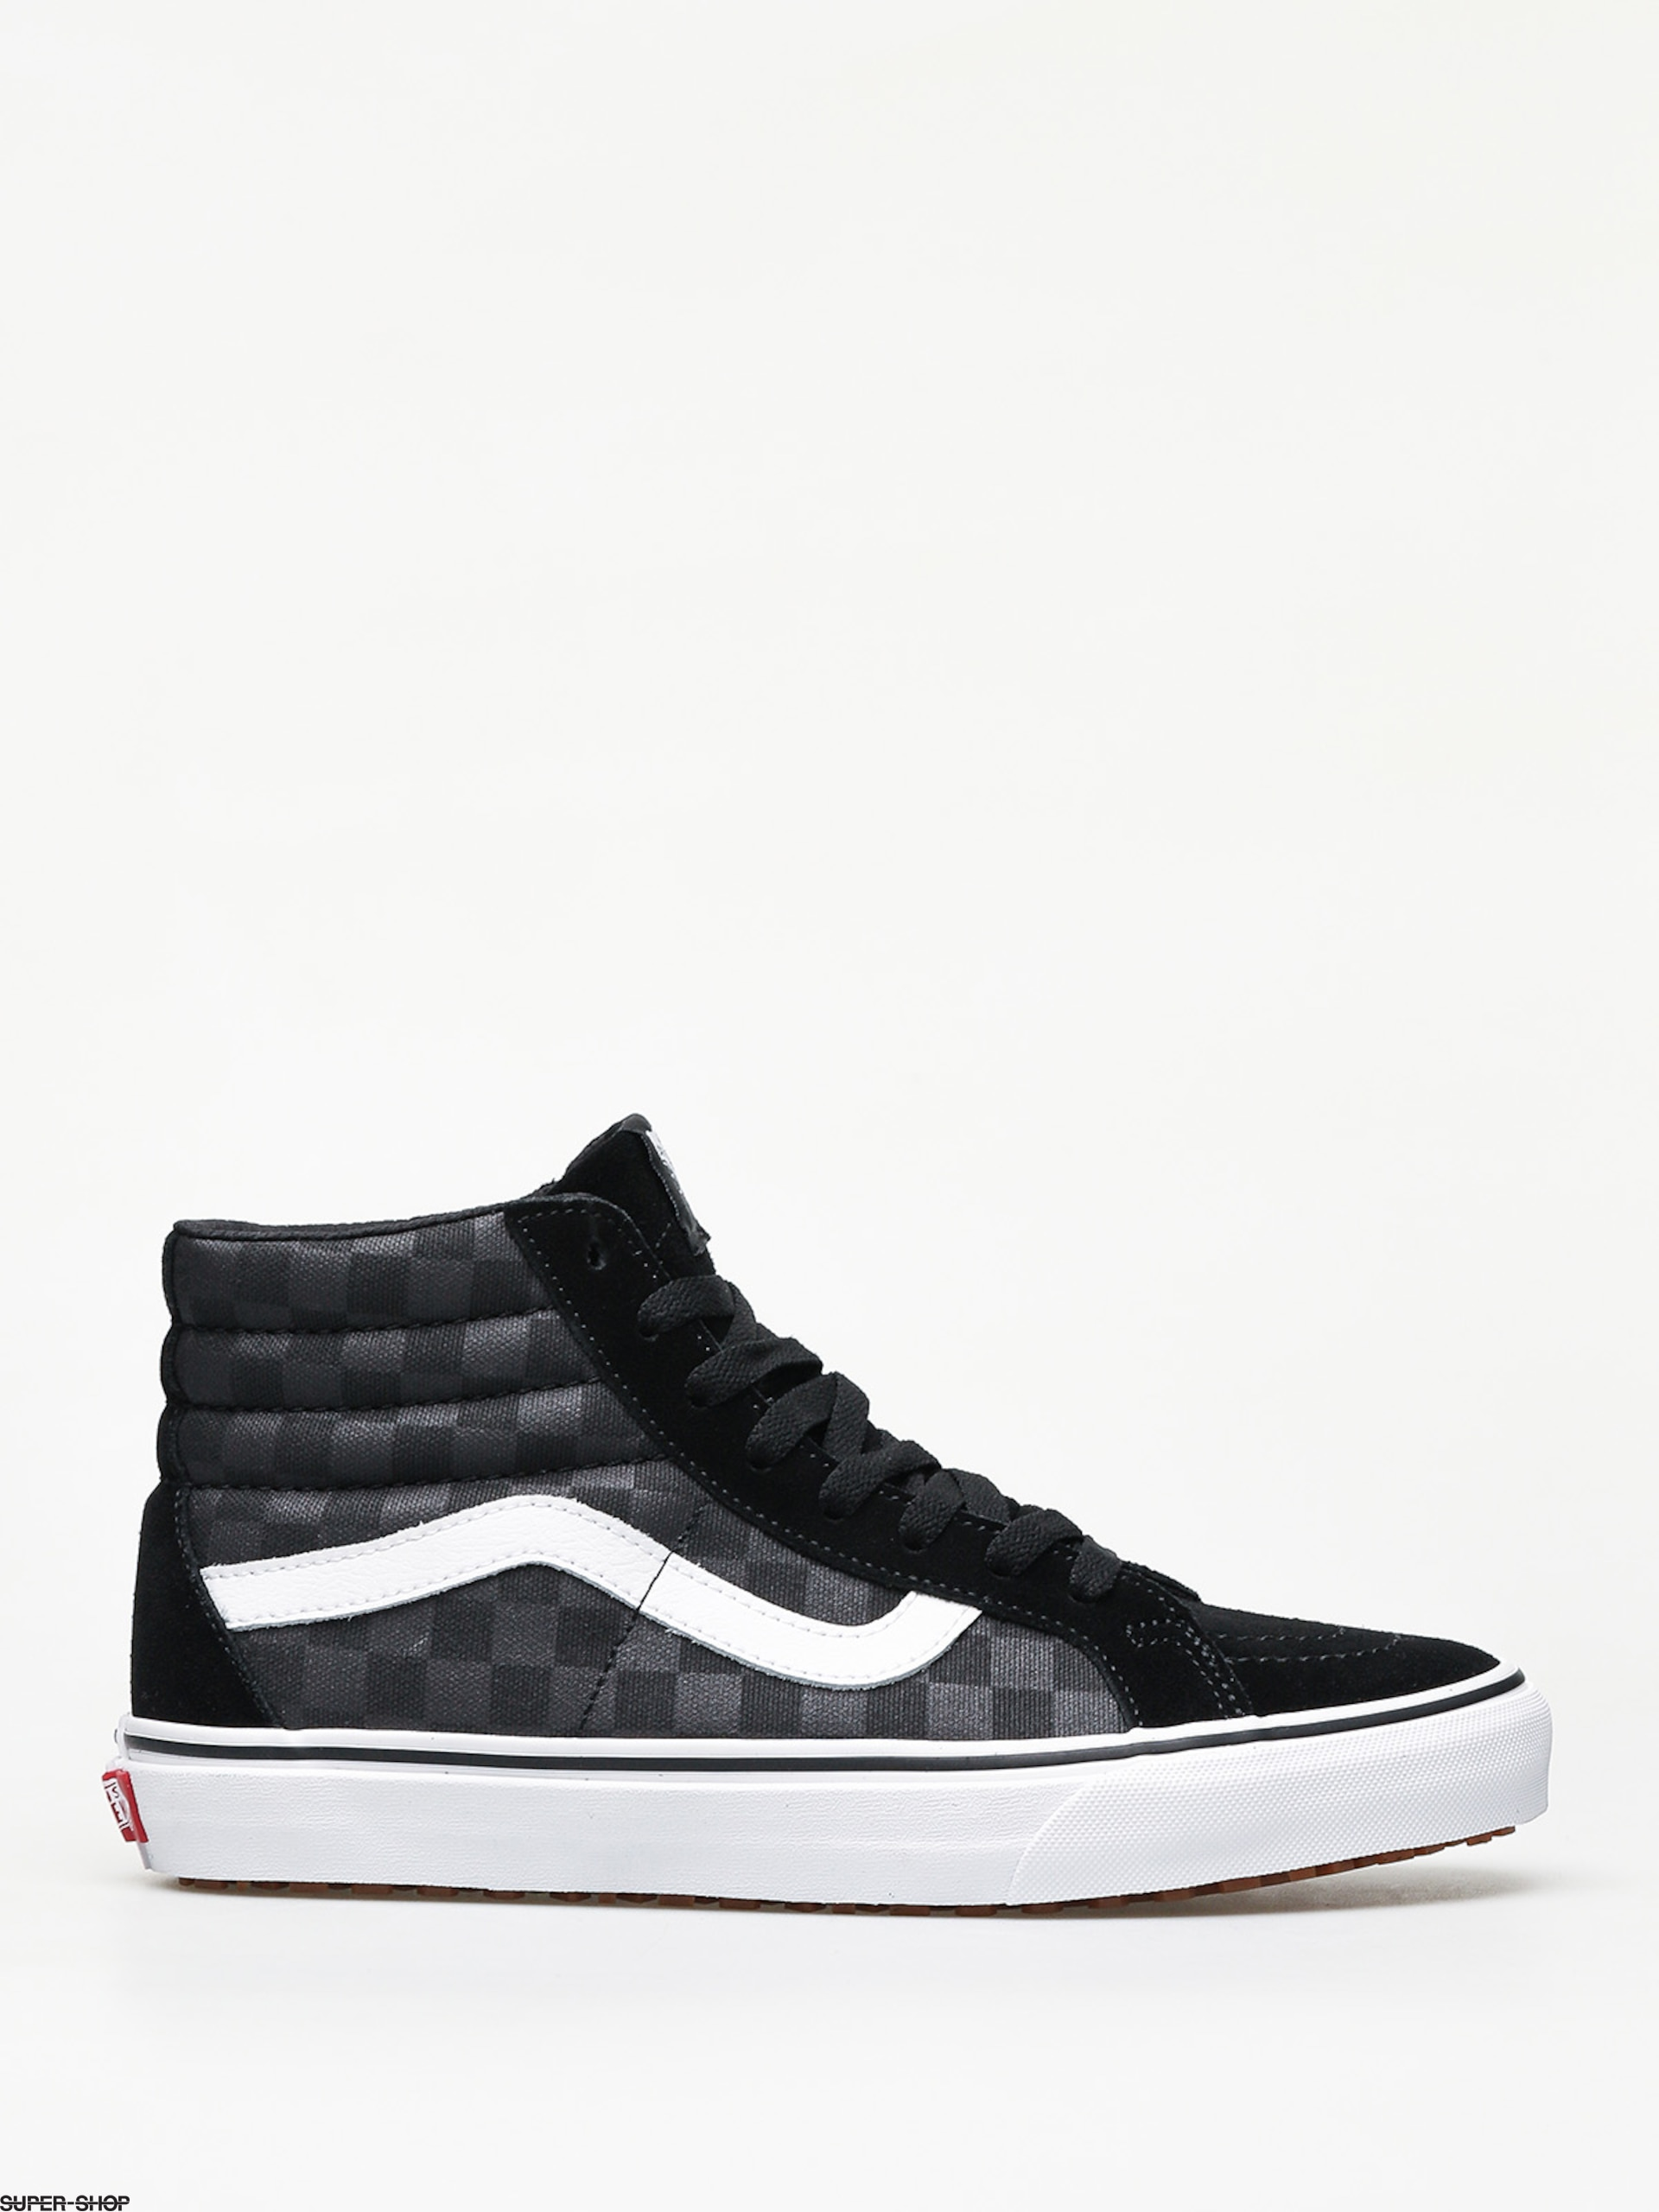 Vans Sk8 Hi Reissue Shoes (made for the